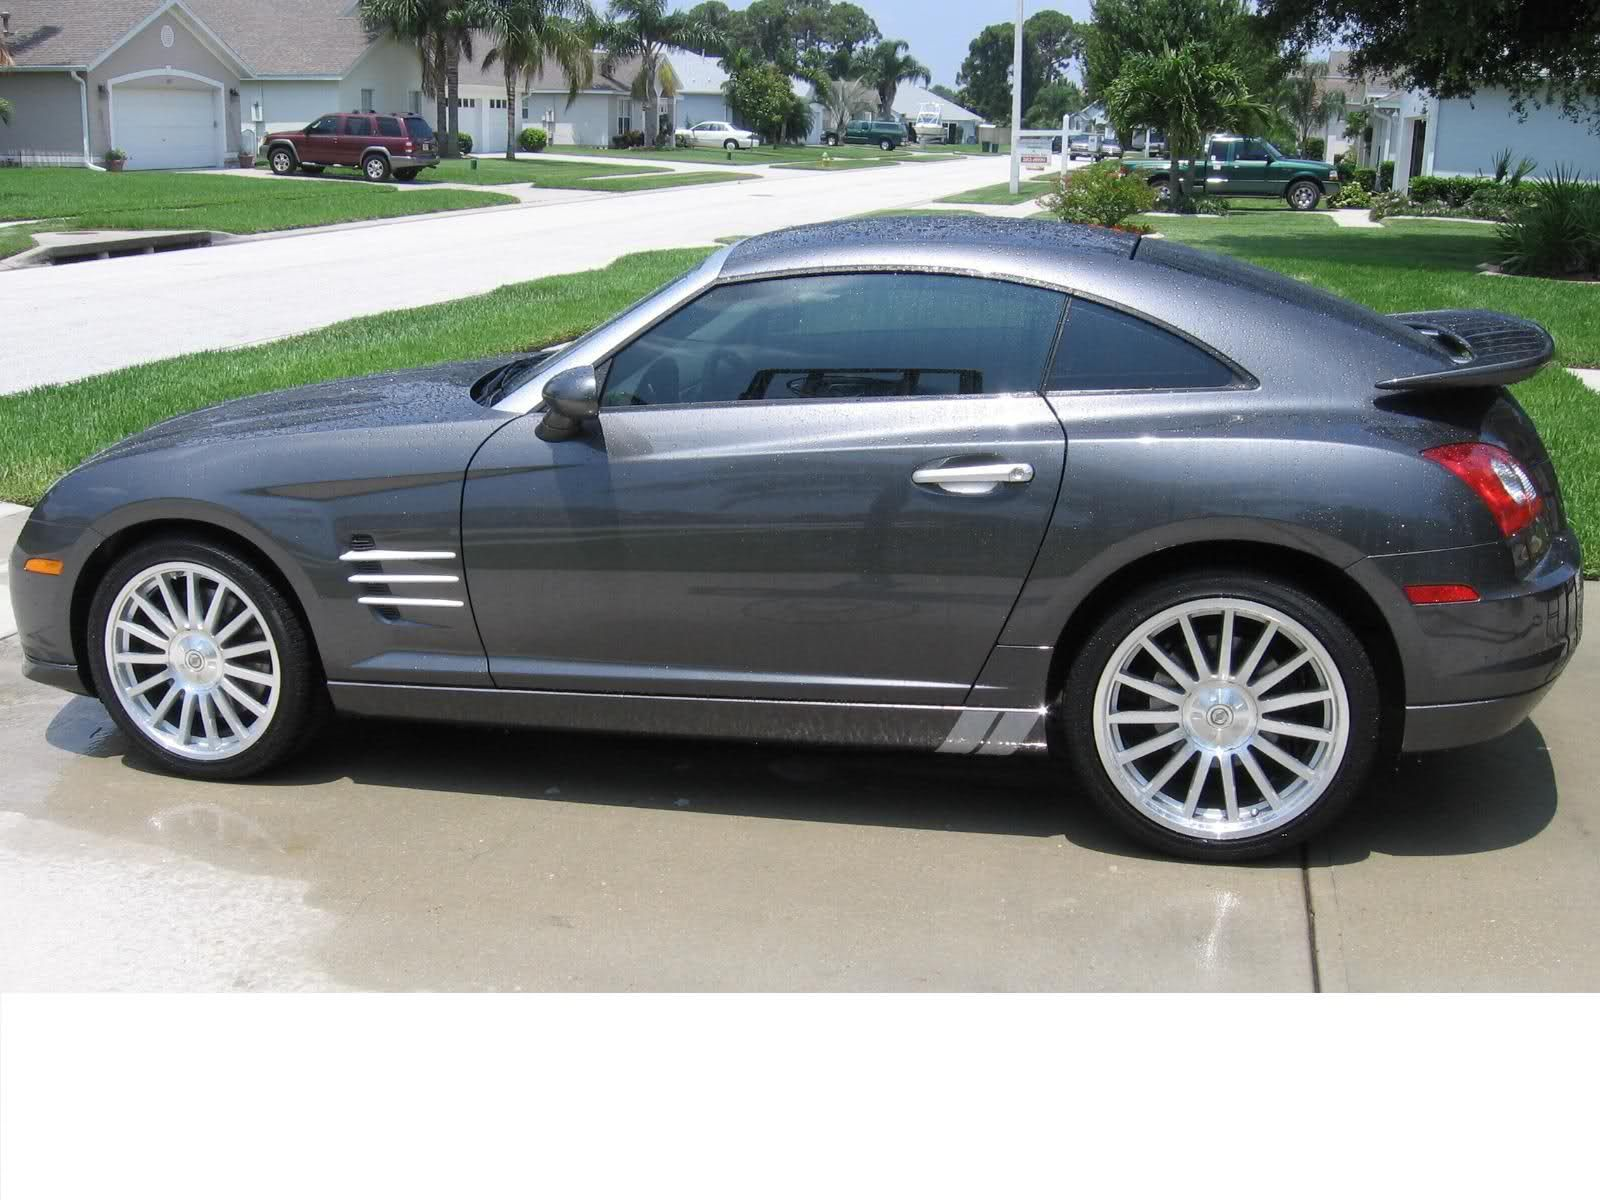 Click the image to open in full size. Chrysler crossfire